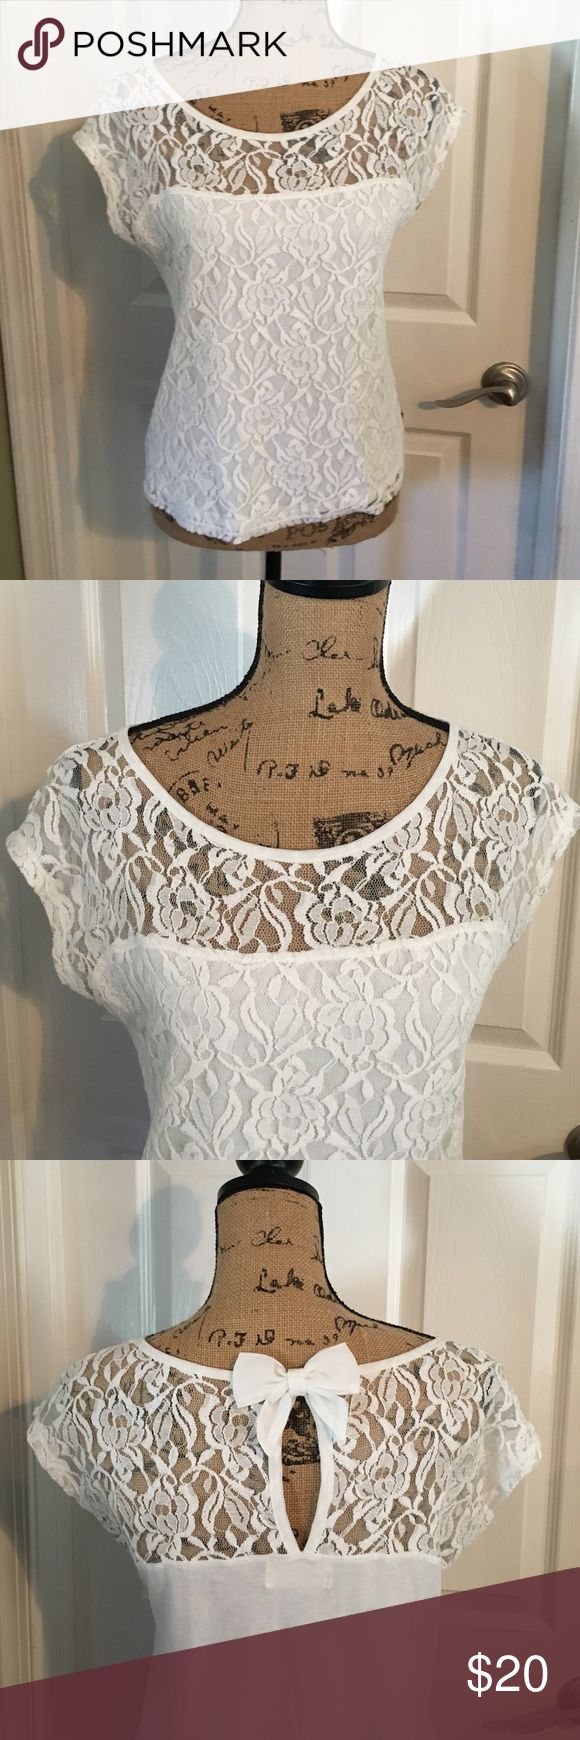 Hollister size medium white short sleeve top Hollister size medium white short sleeve top. Front of top is white lace. See through lace is just on the top above the chest. Round neck. The back is see through lace just at the top with a bow. In great condition. Only wore a couple of times. Hollister Tops